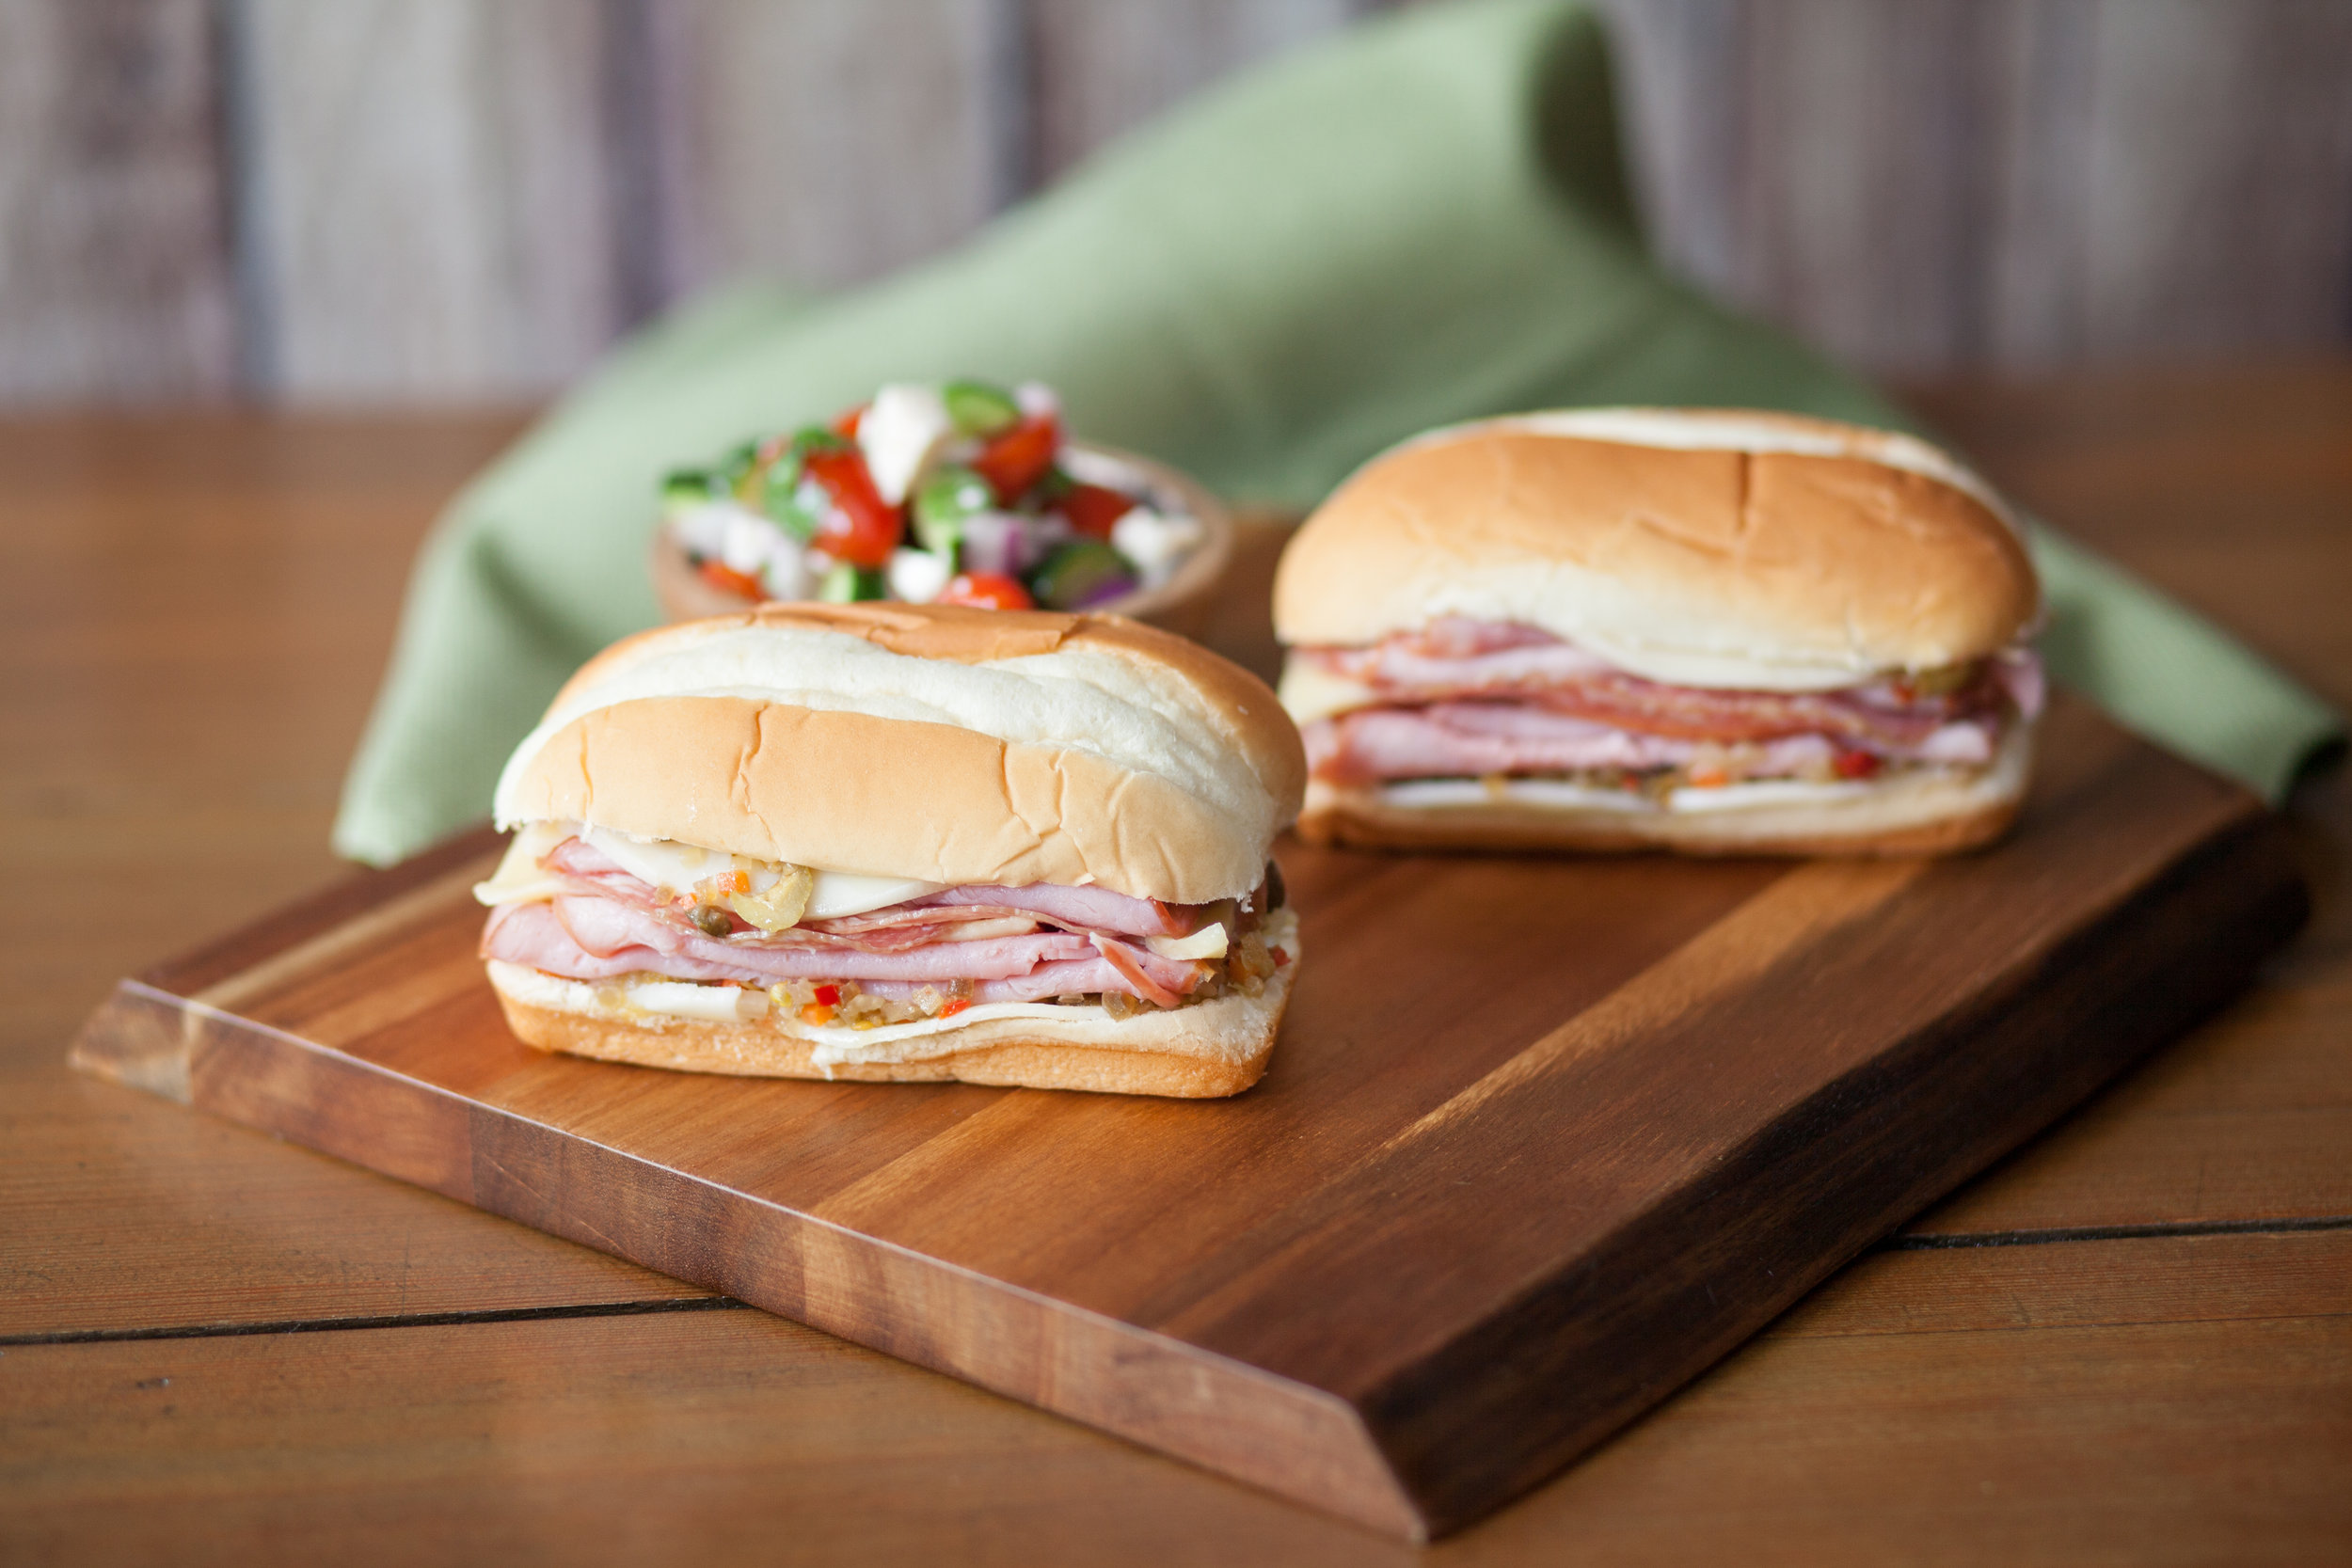 """1. Muffuletta Sandwich - This would be a good recipe for a New Orlean football fan. On our Super Bub Buns pile on salami, ham, mozzarella, provolone, Swiss and an olive mix. A taste of the """"Big Easy"""" while gearing up for a game is basically living your best life."""